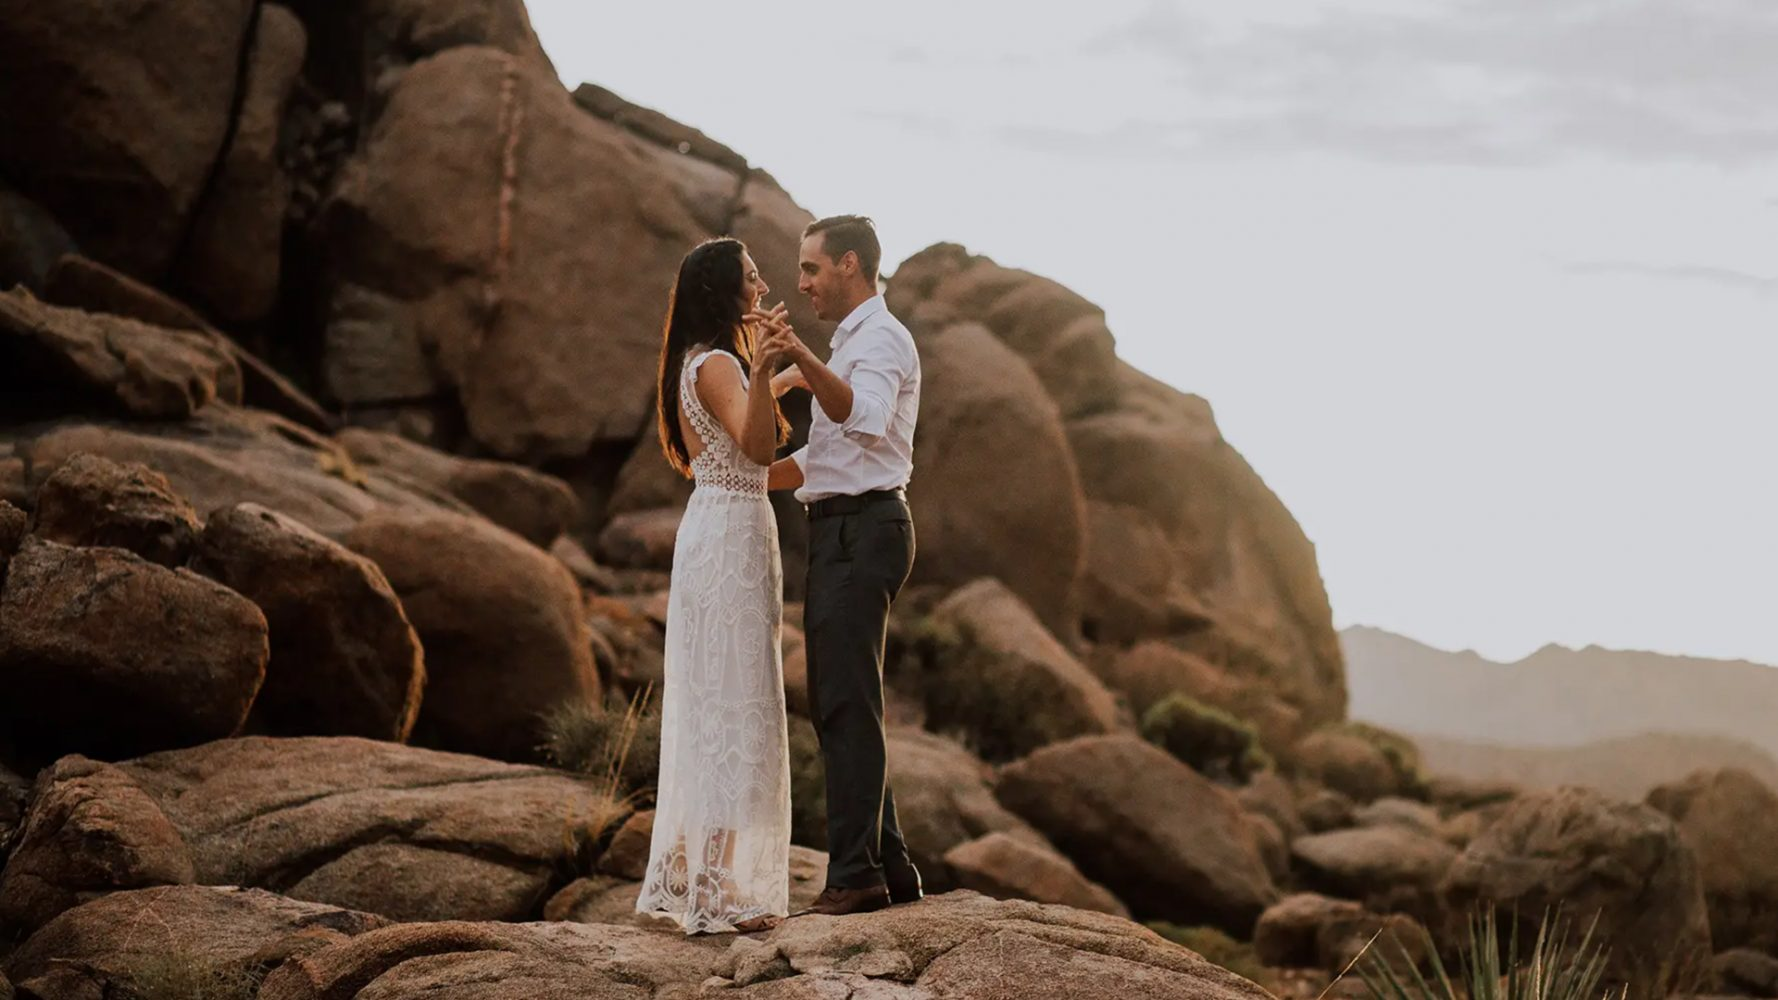 Lauren + Borja | Joshua Tree, California | Joshua Tree National Park